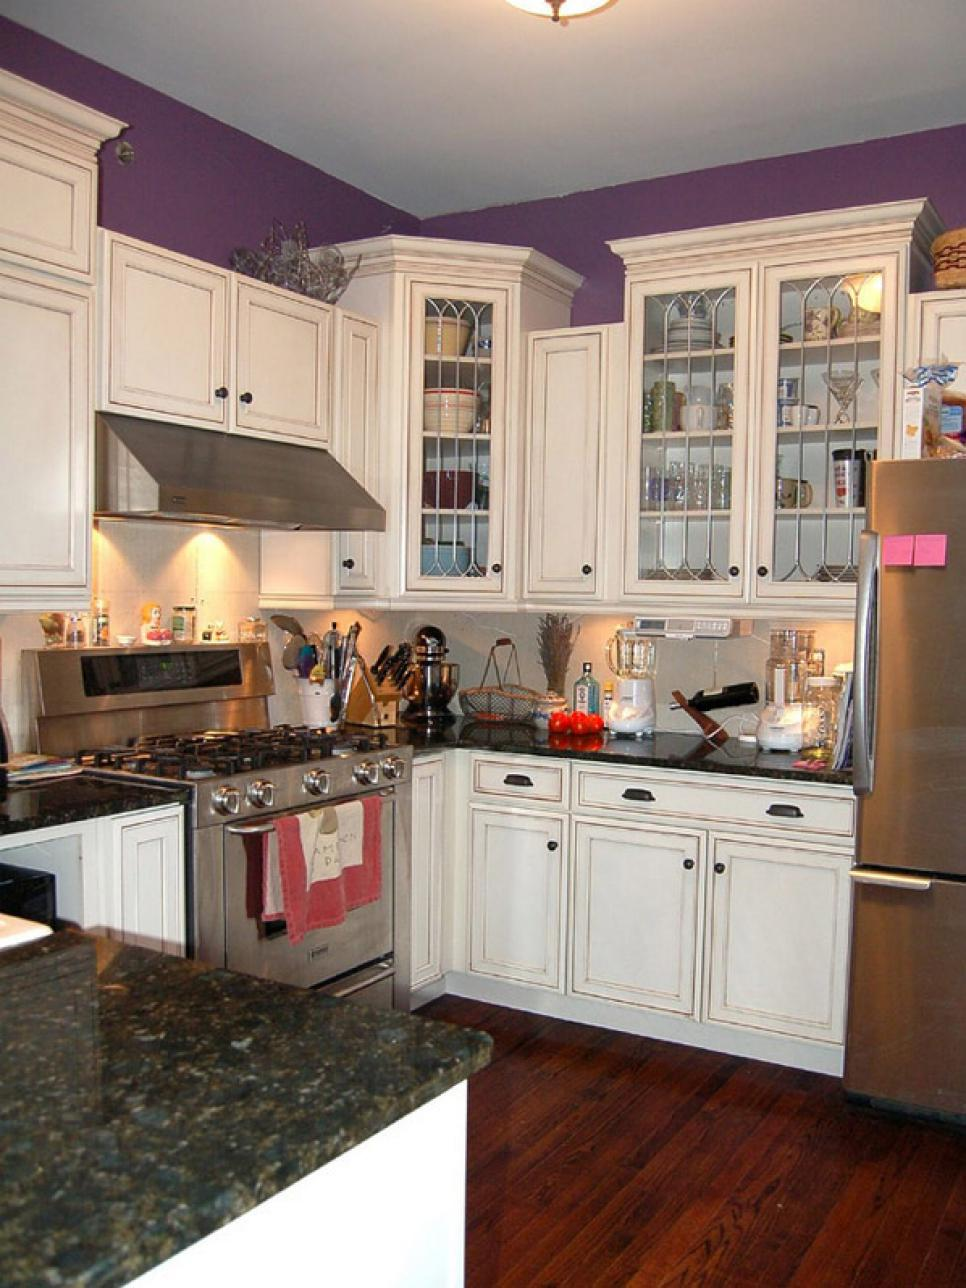 Interior Decorating Kitchen 23 Inspirational Purple Interior Designs You Must See